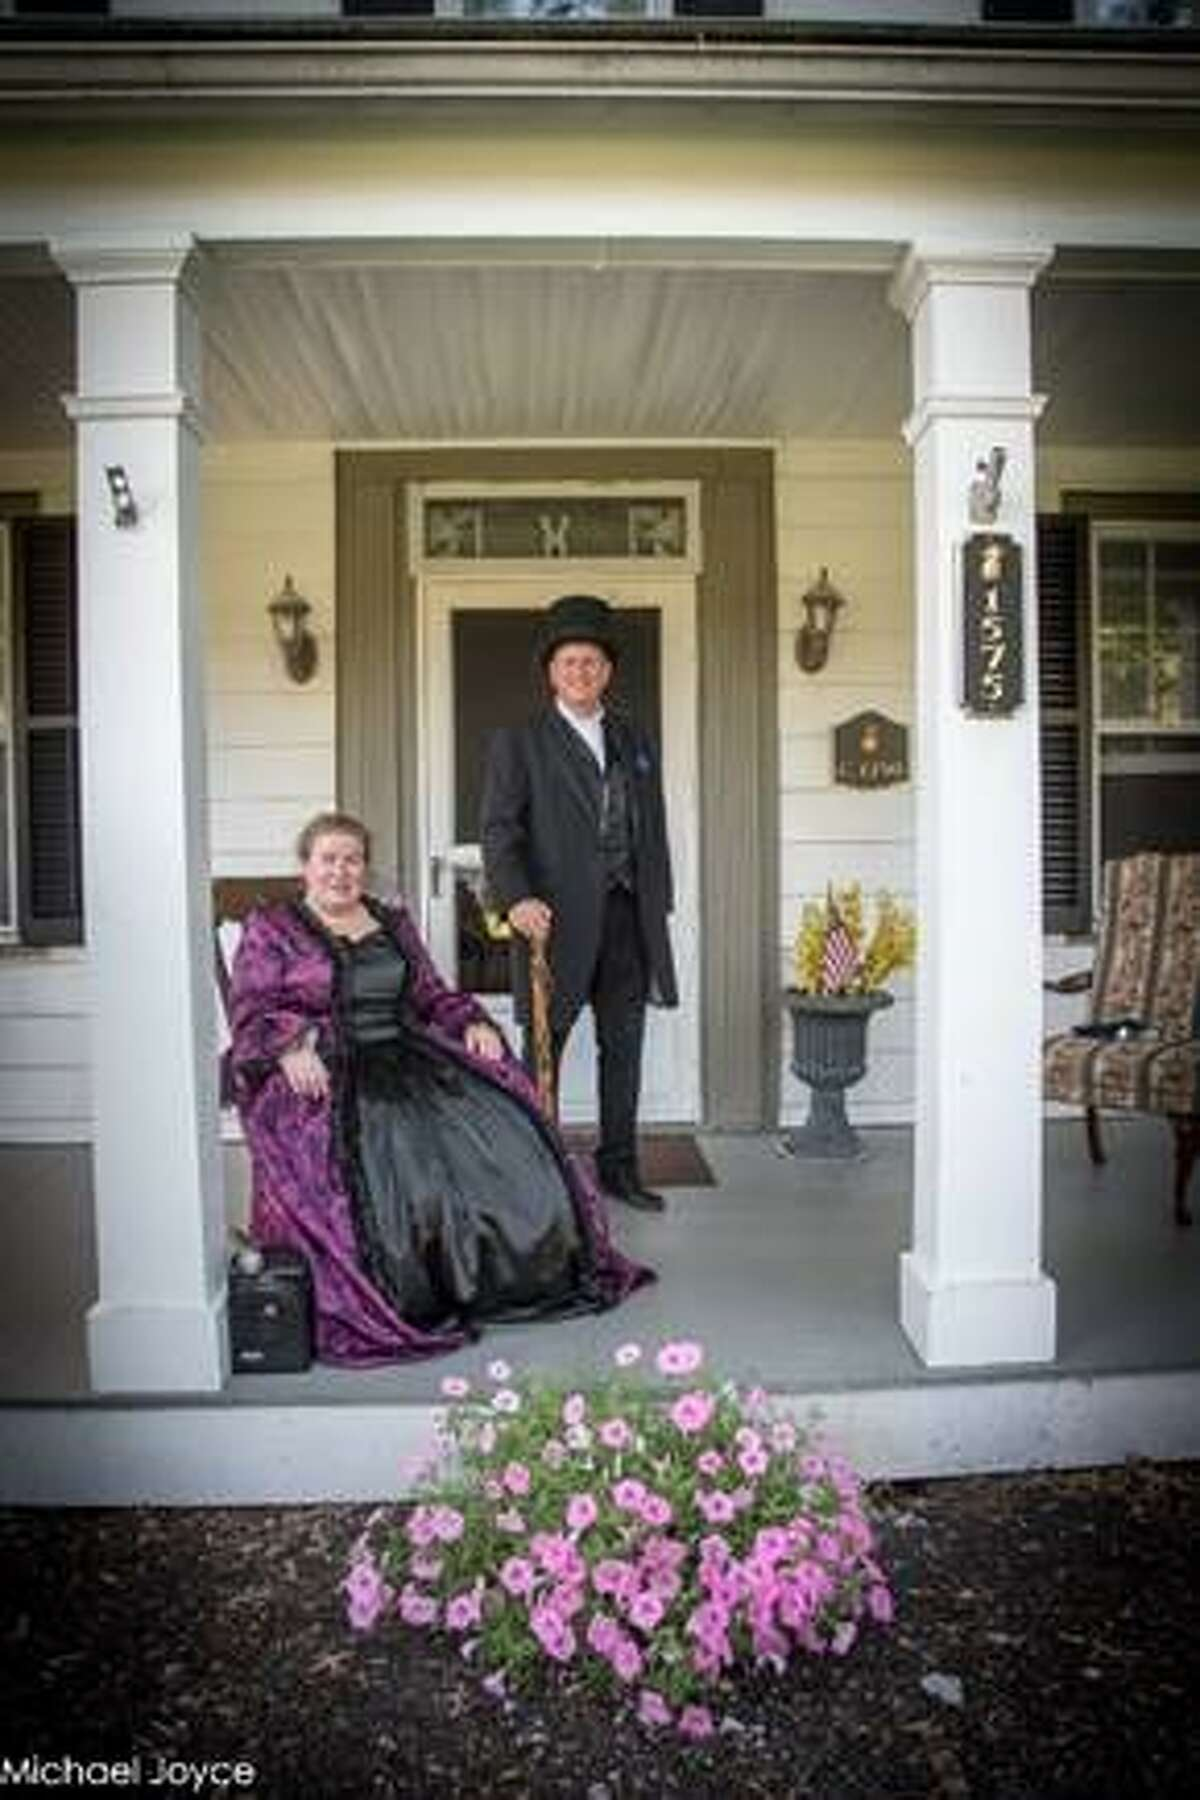 The Friends of the Slingerland Family Burial Vault present A Visit with Slingerlands' Founding Family on Sunday, Oct. 6. Participants will enjoy an afternoon walking tour of historic Slingerlands and experience first person presentations by costumed performers at locations along the tour route. (Photo provided)